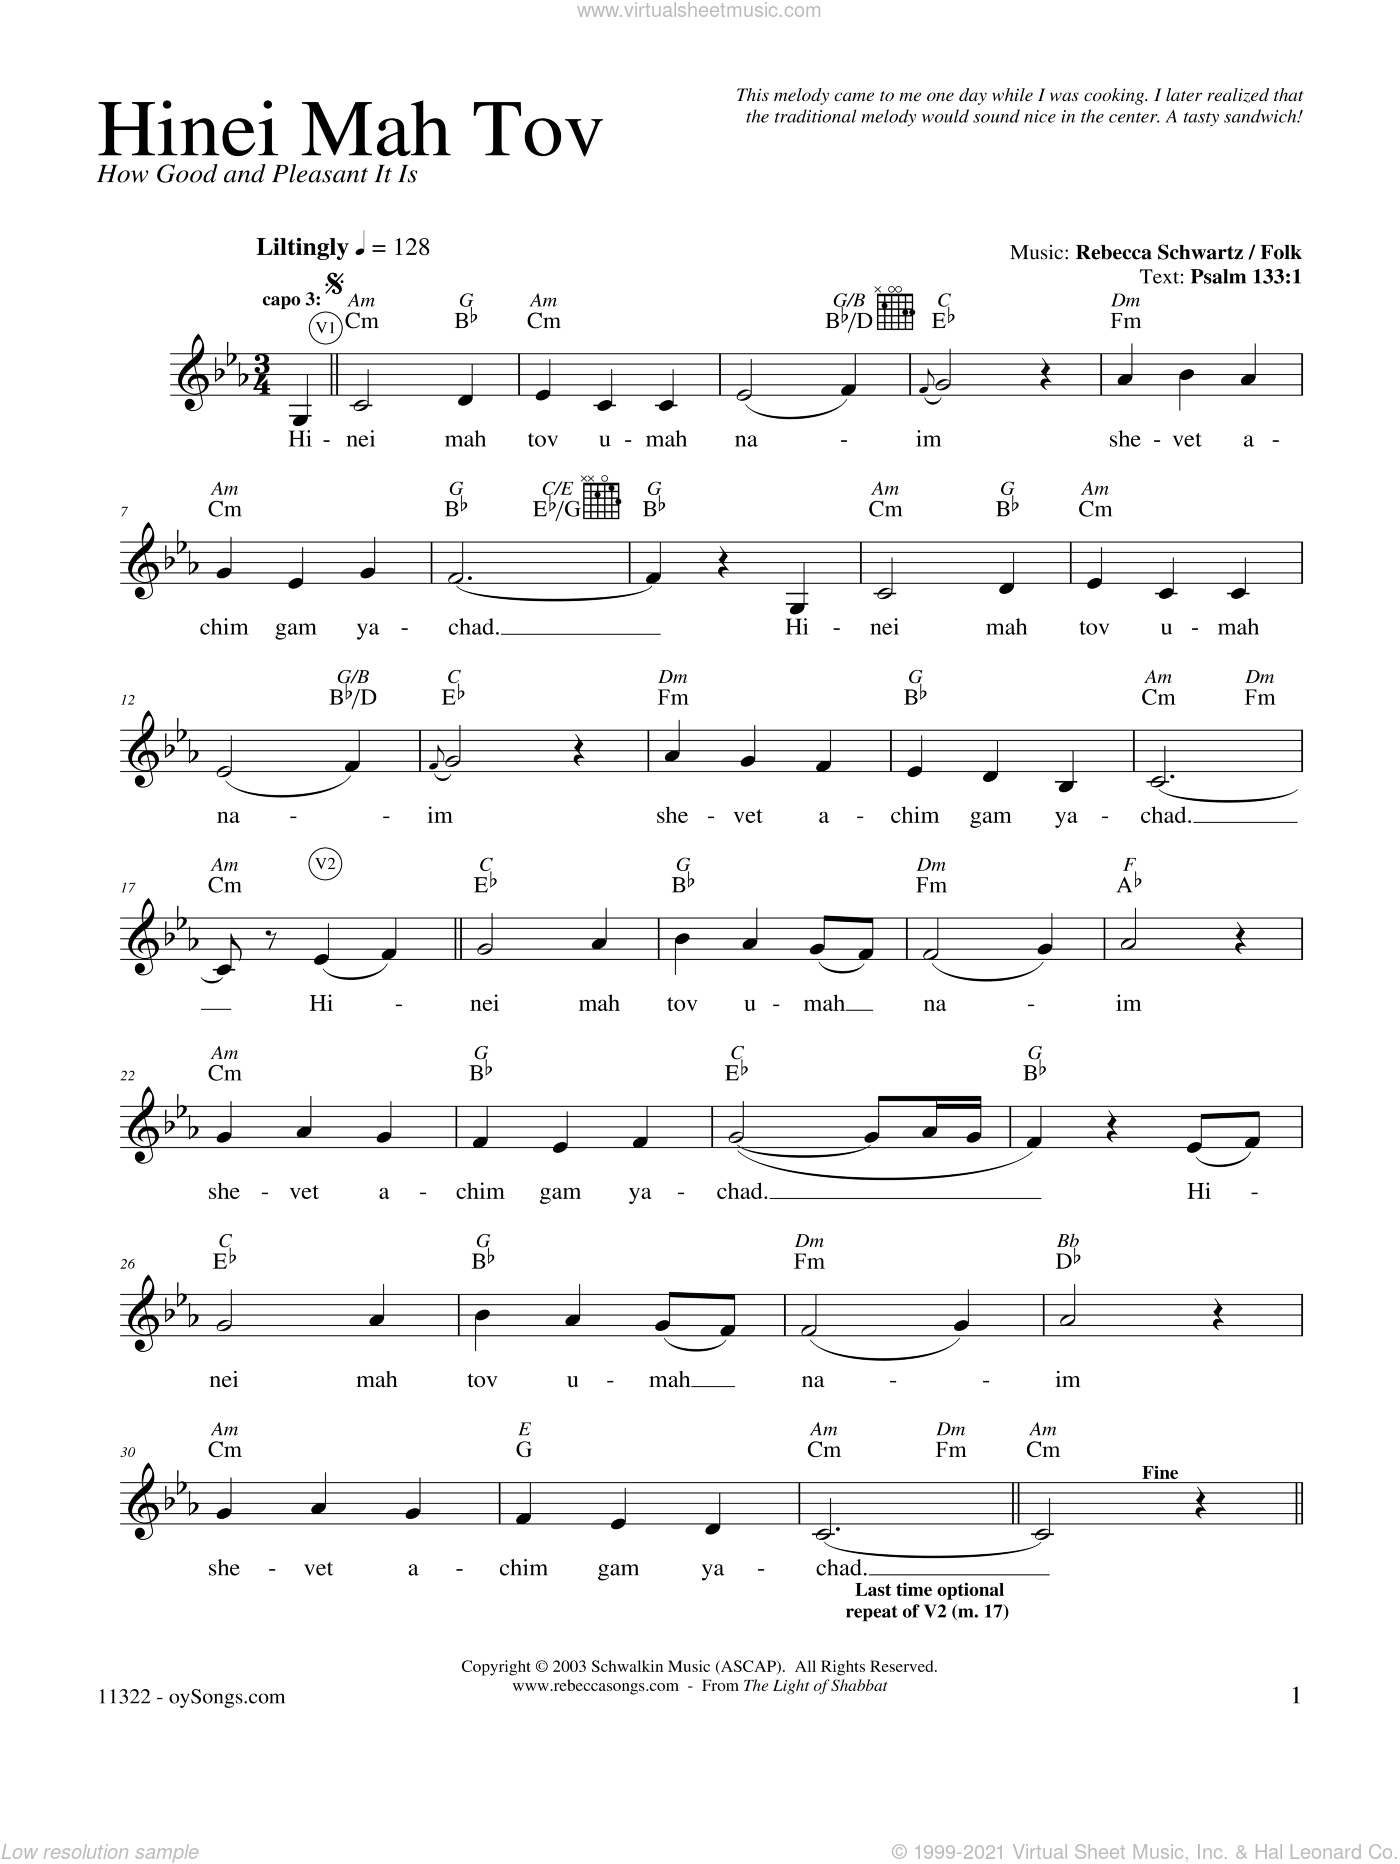 Hinei Mah Tov sheet music for voice and other instruments (fake book) by Rebecca Schwartz, intermediate skill level